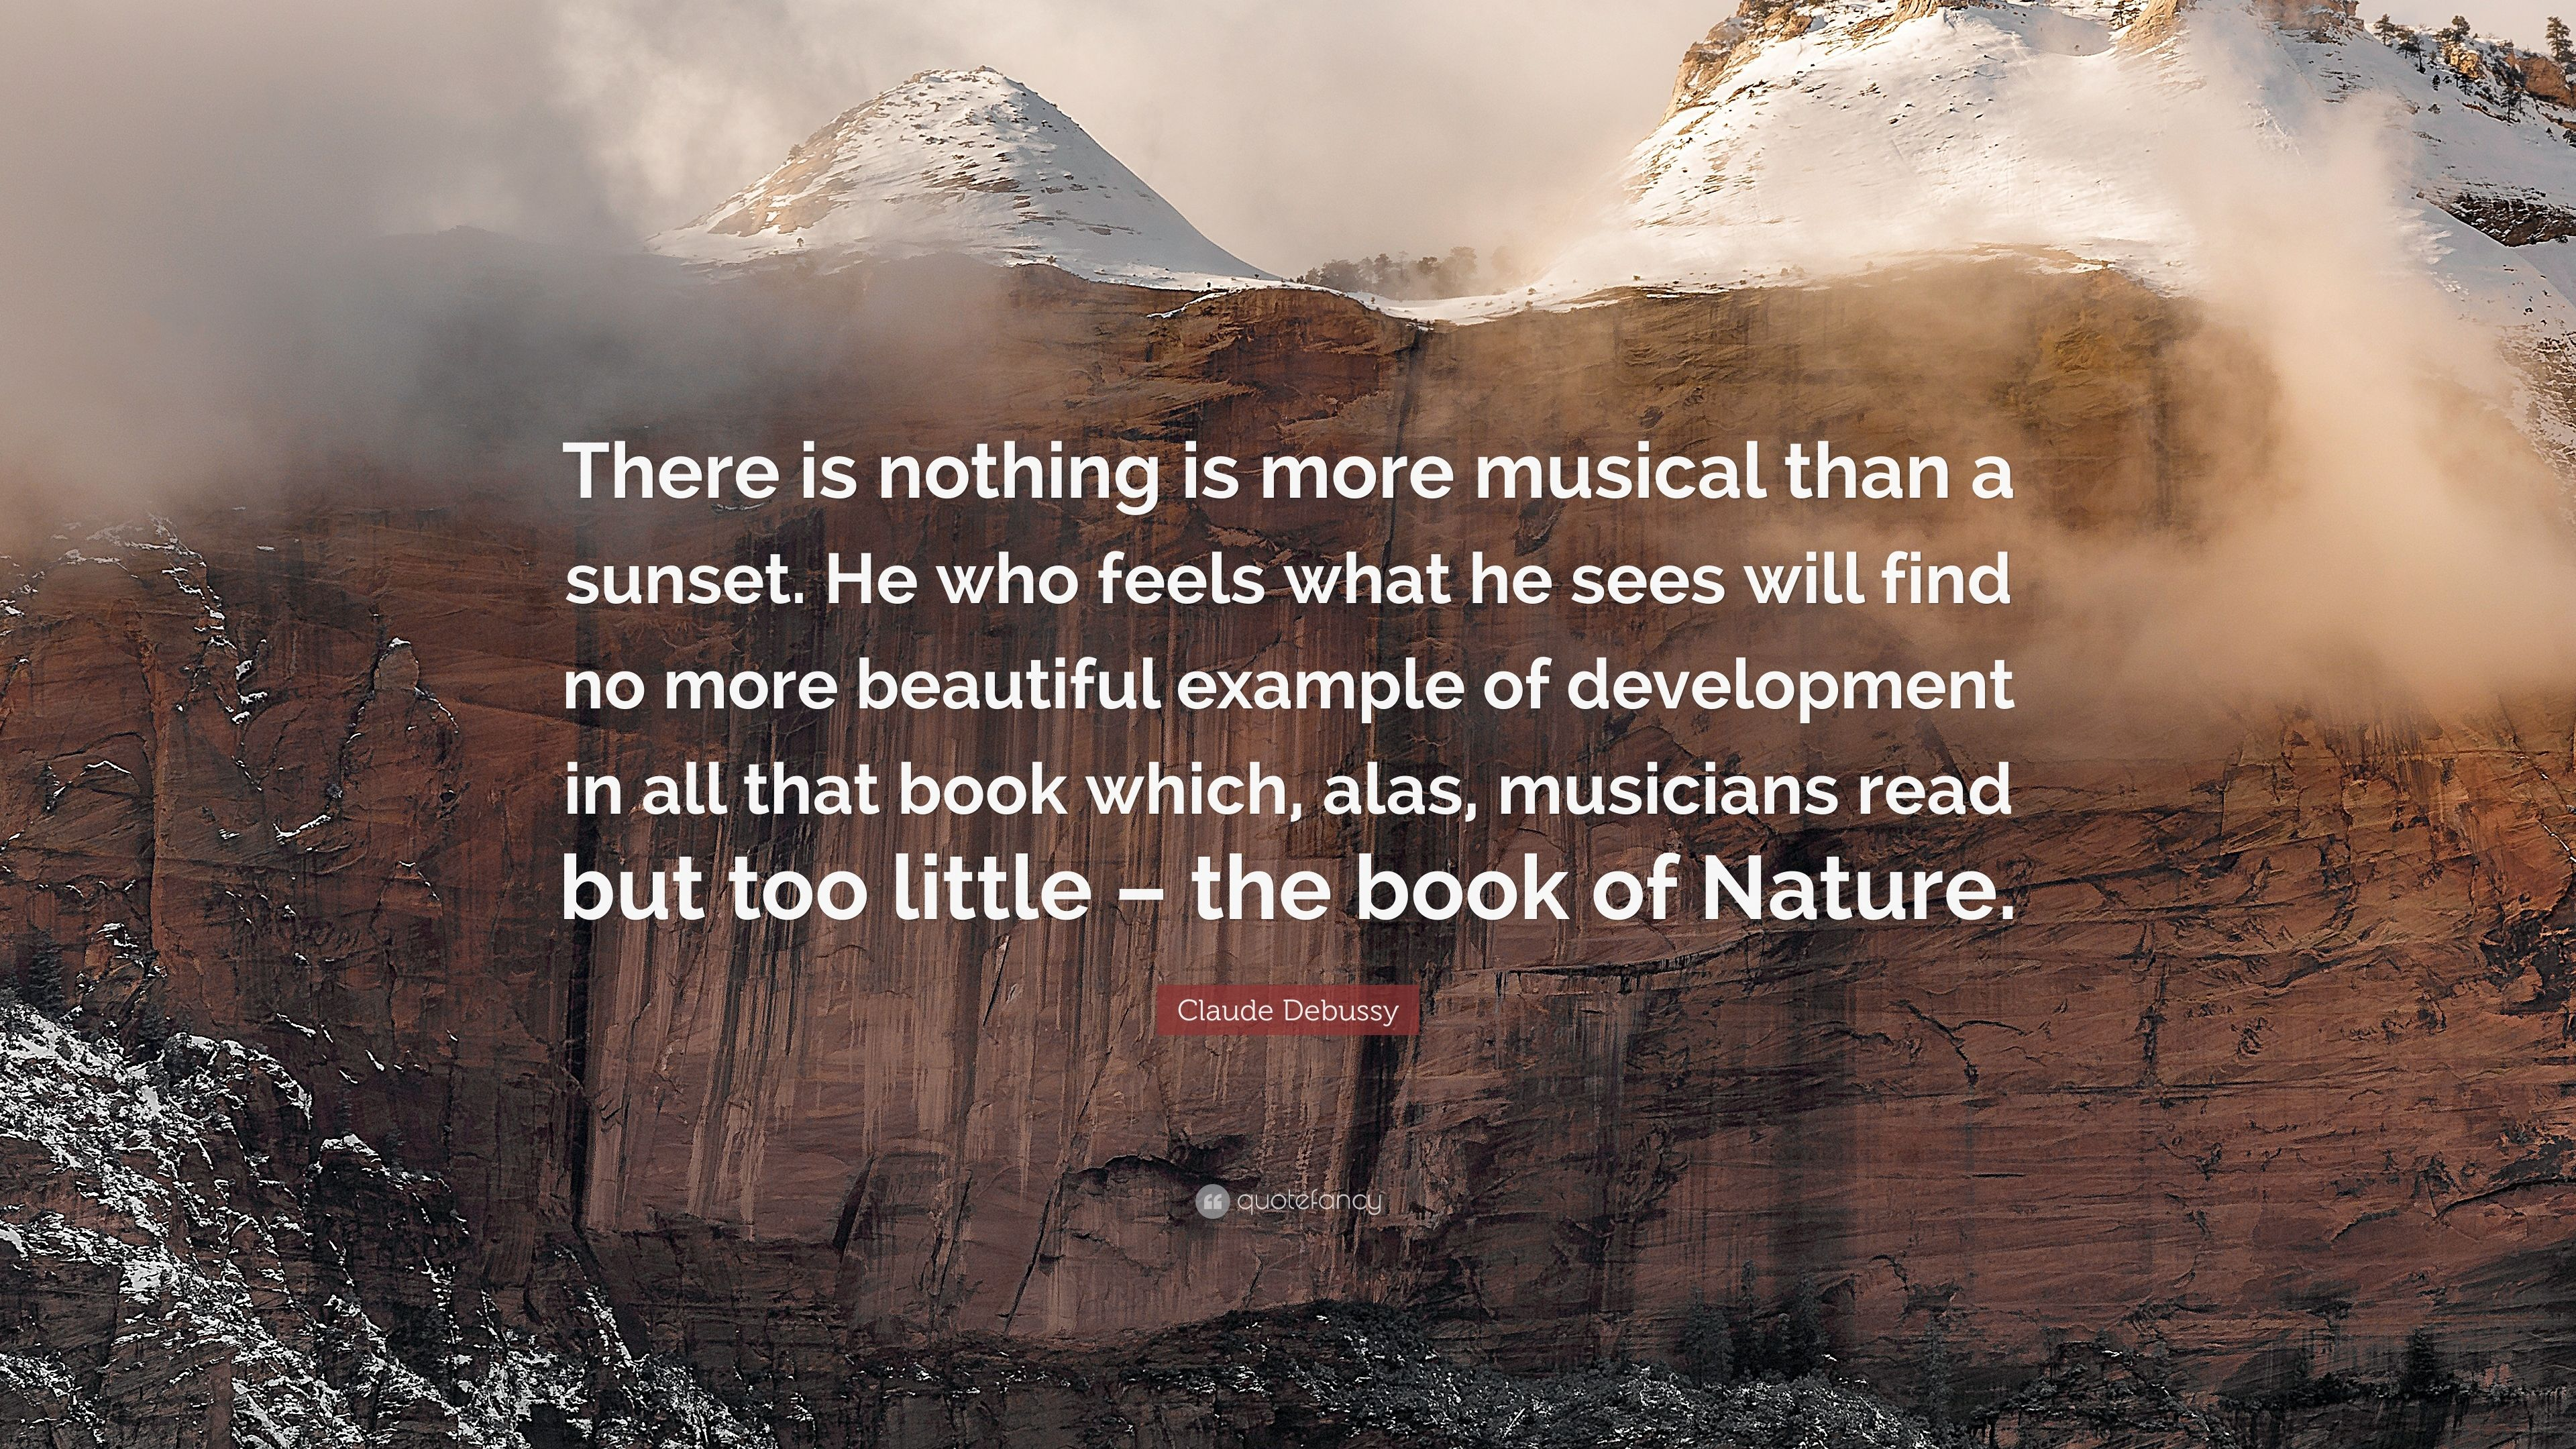 Claude Debussy Quote There Is Nothing Is More Musical Than A Sunset He Who Feels What He Sees Will Find No More Beautiful Example Of Develop 10 Wallpapers Quotefancy